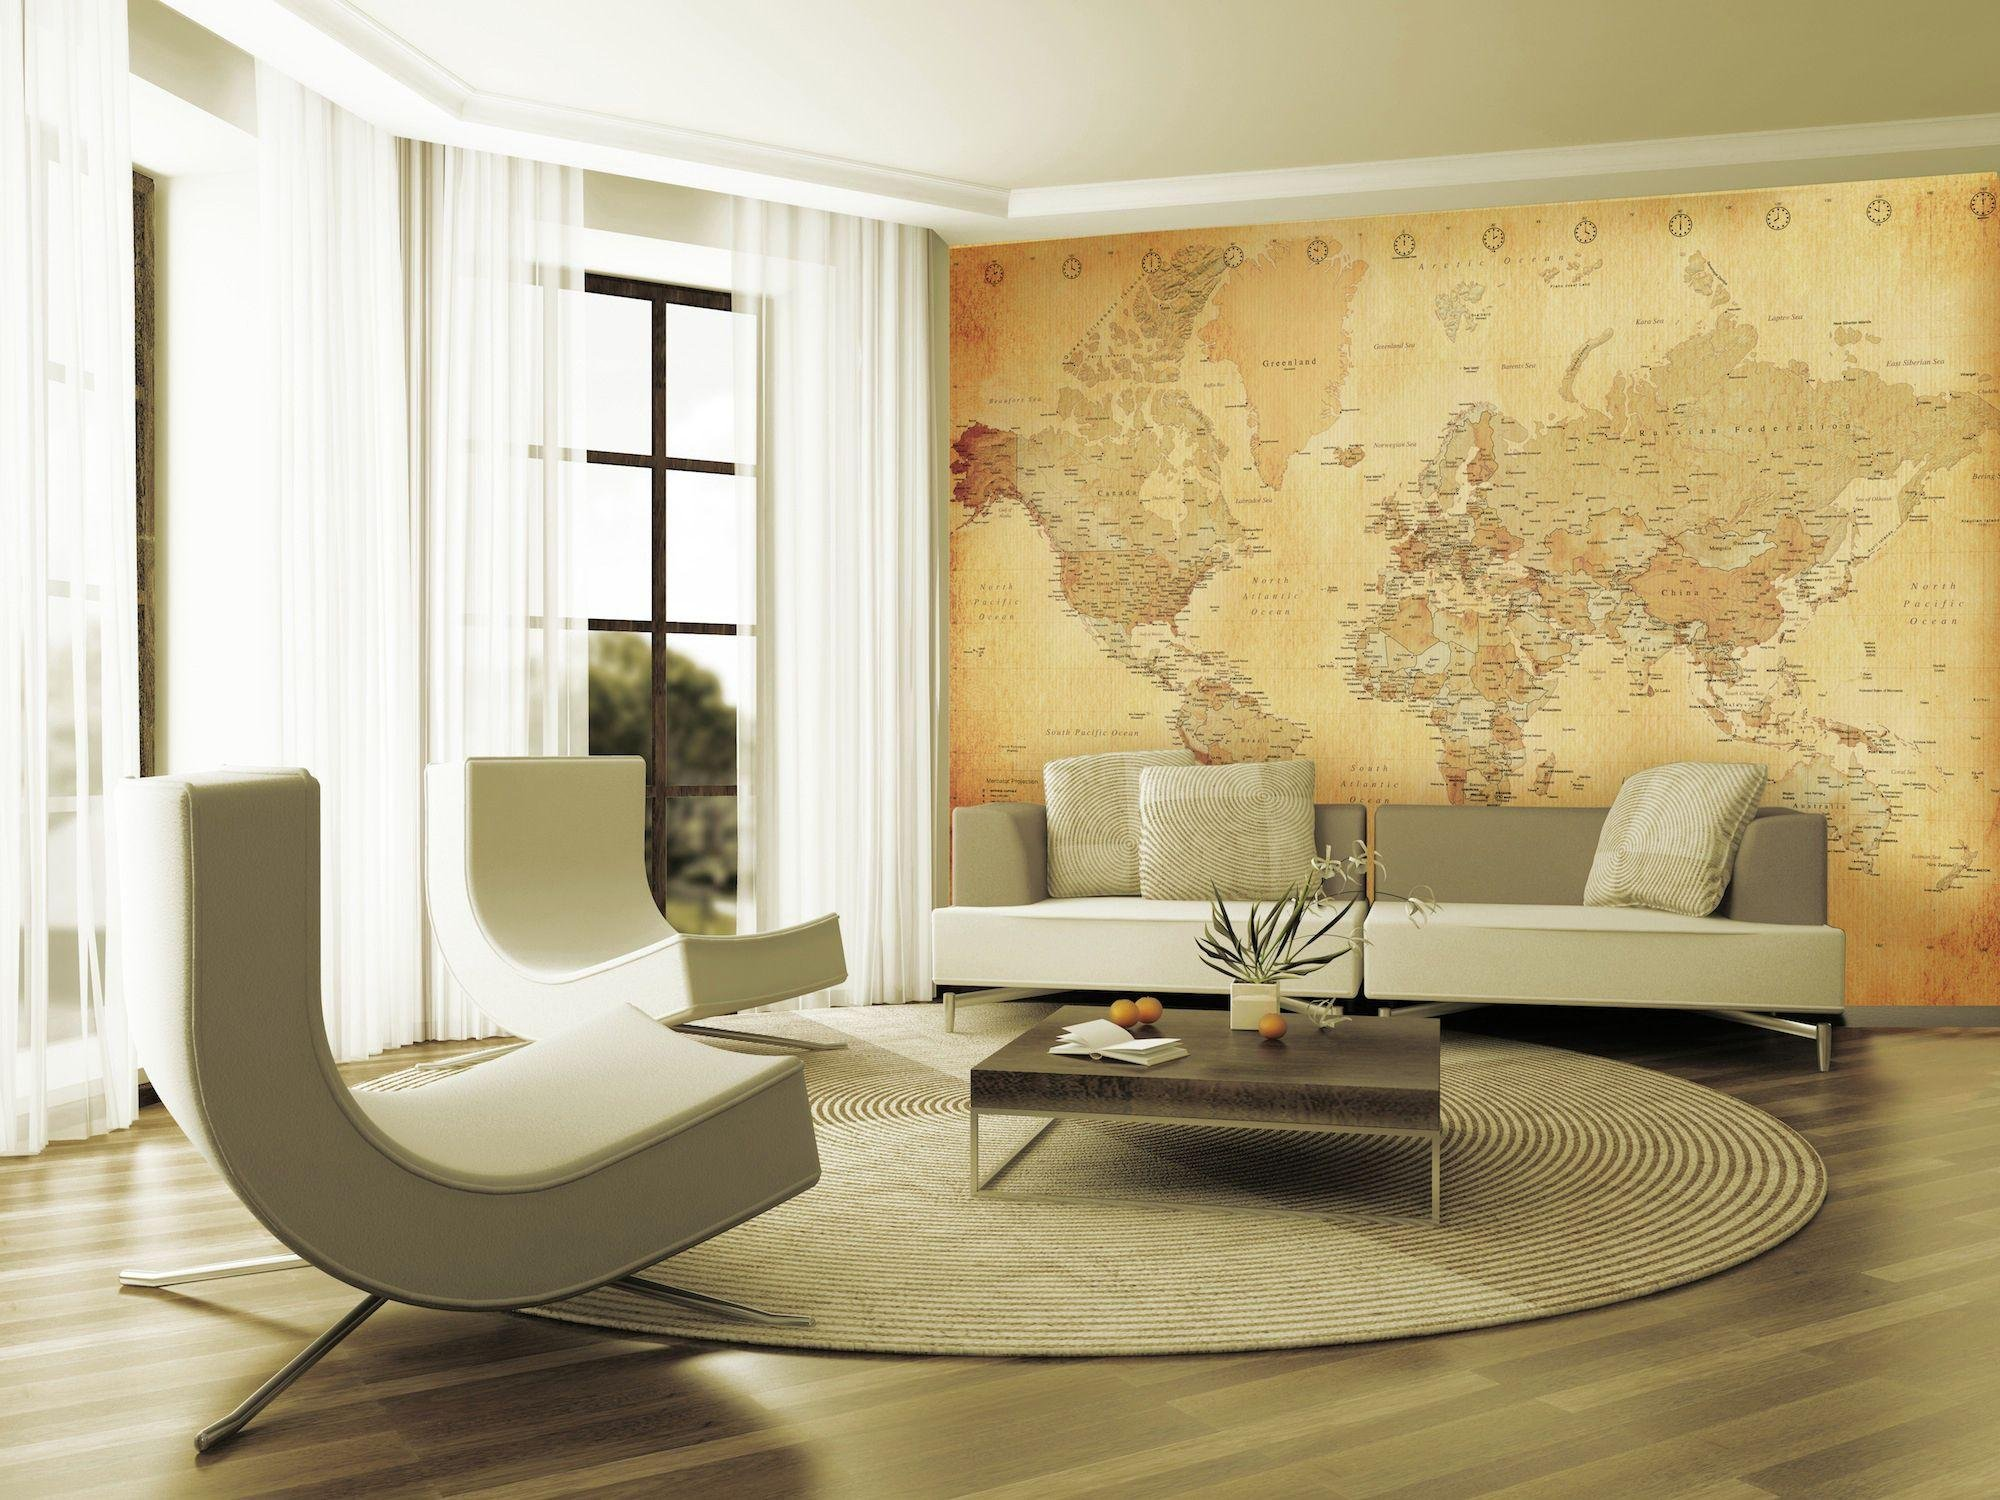 1Wall - Vintage Map - Wall Mural